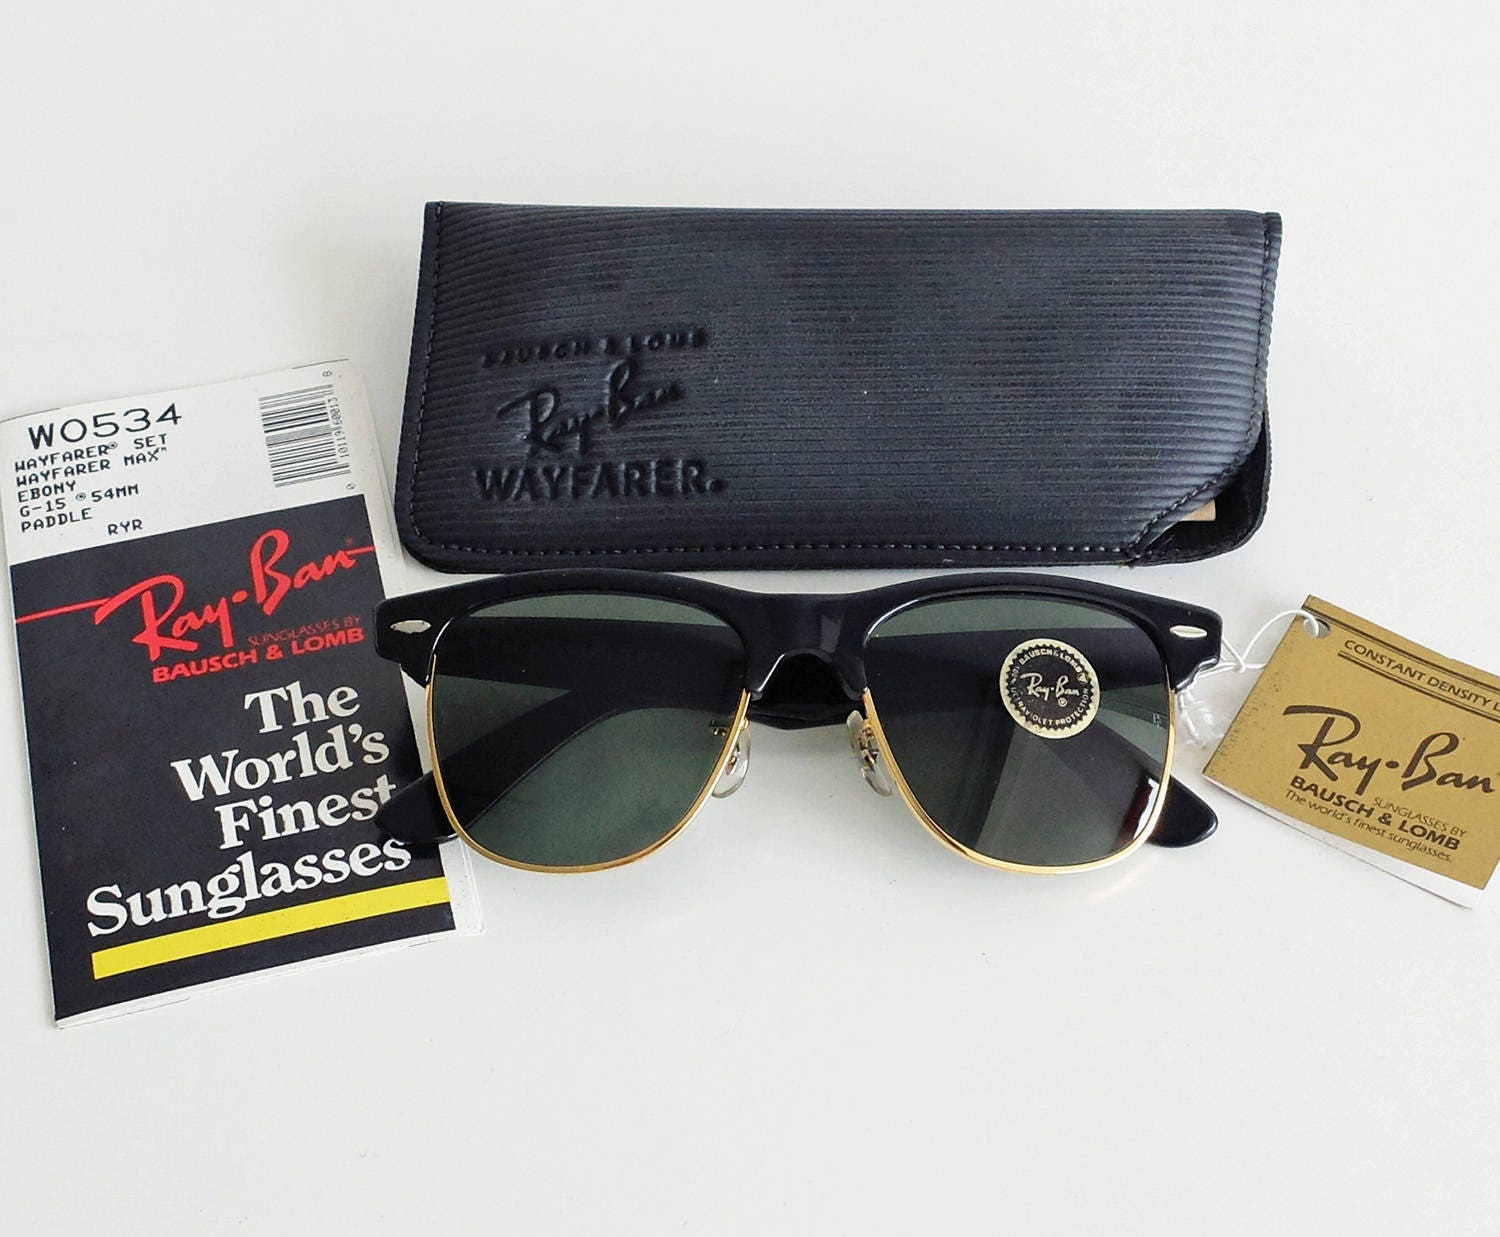 843c9aa632 ... france vintage bl ray ban wayfarer max w0534 54mm sunglasses usa 3a202  e6f0d